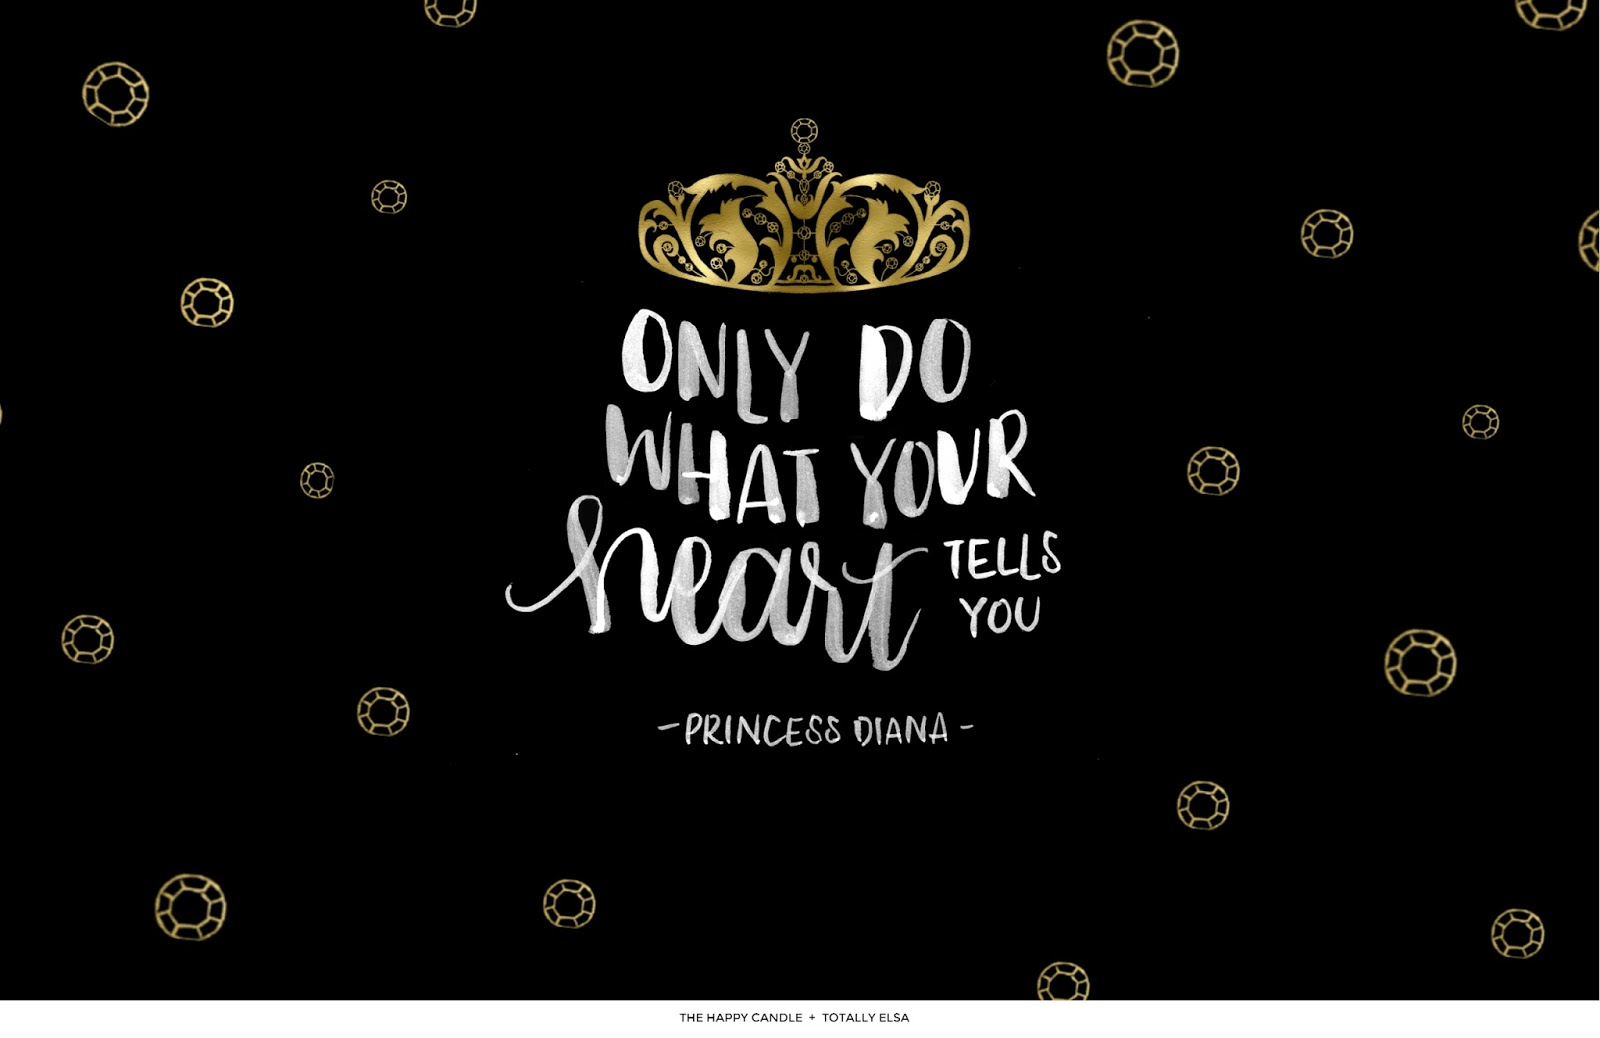 Free Downloadable Desktop, Phone Wallpaper / Quote by Princess Diana / Also comes in white. / Created by The Happy Candle and Totally Elsa / Lady Diana Spencer, follow your heart, black, gold